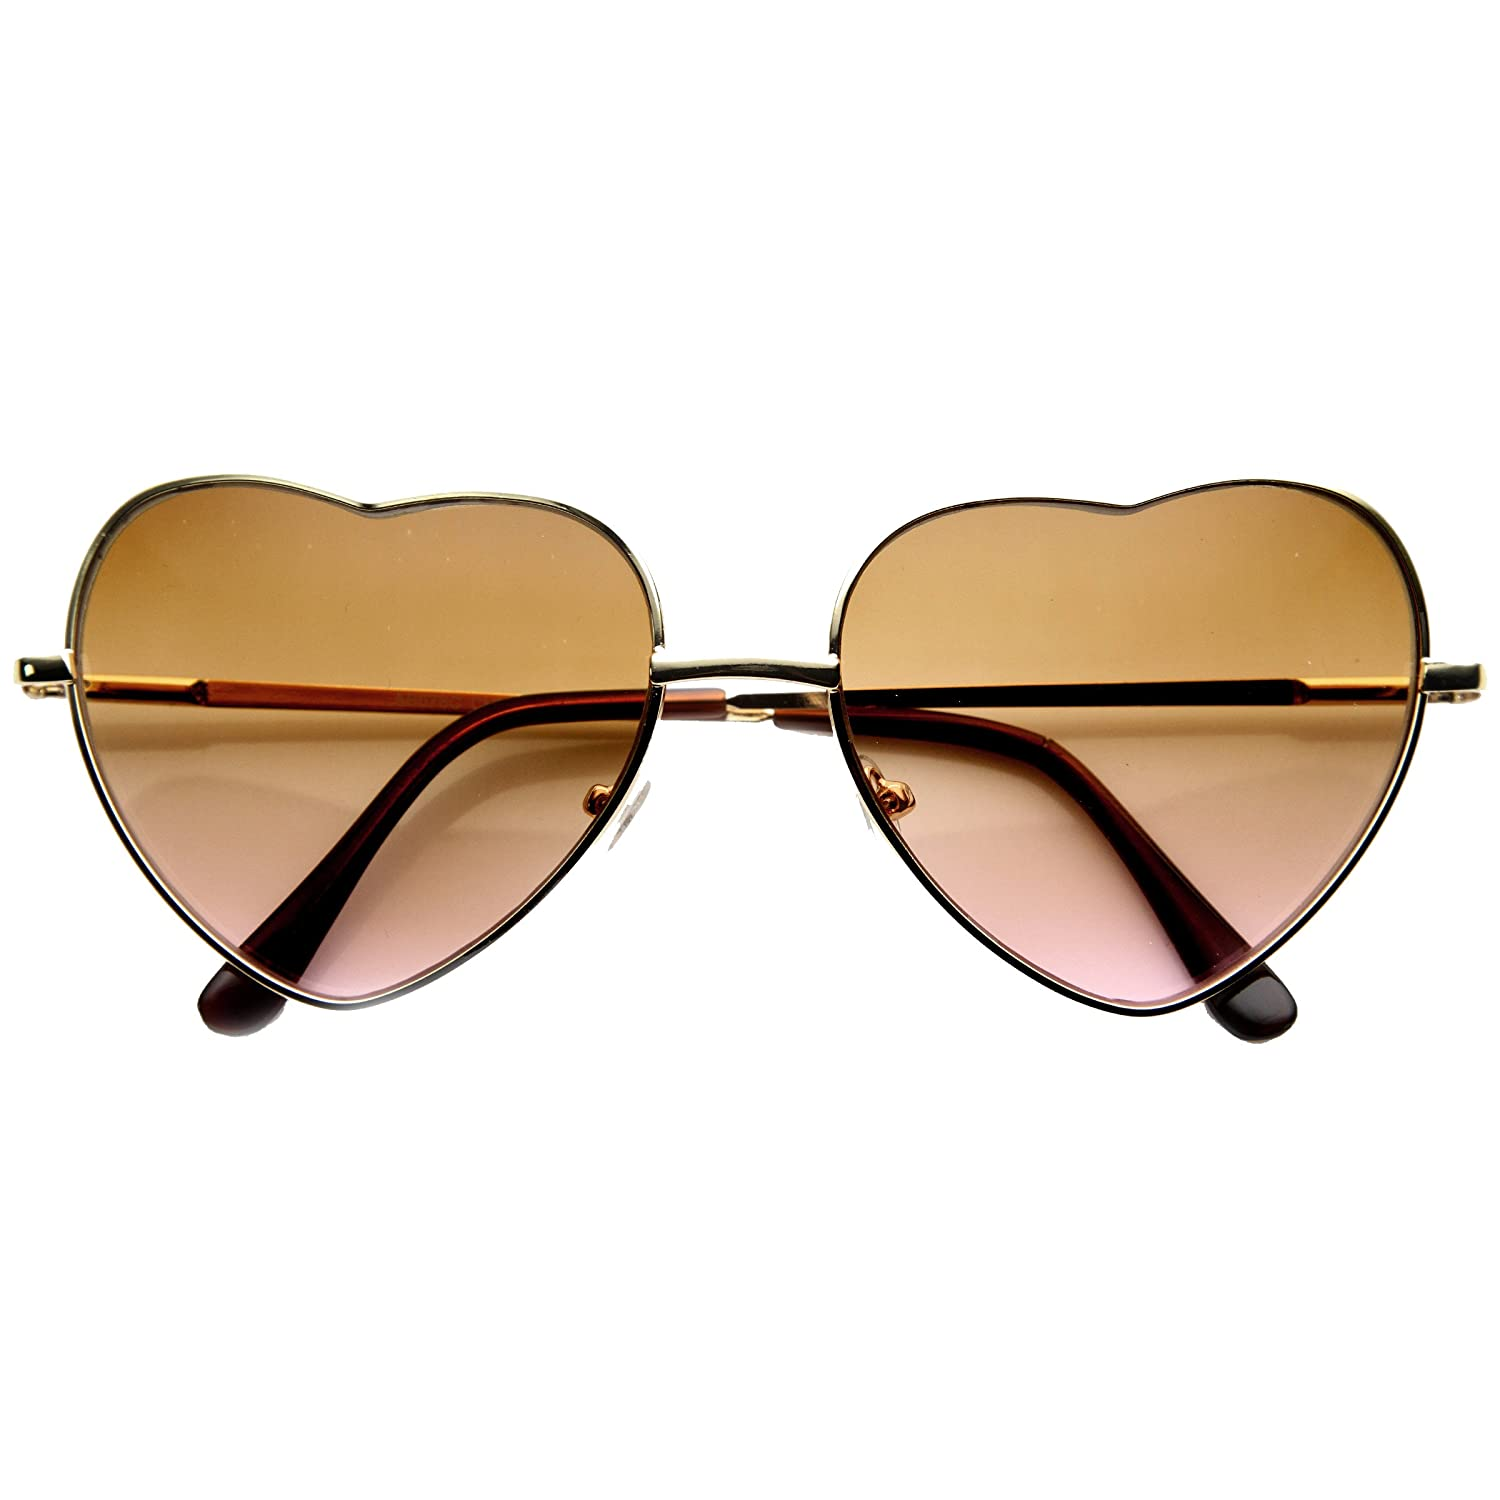 7bef1de3ebe Amazon.com  Womens Fashion Metal Color Tint Lens Heart Shaped Sunglasses  (Light-Gold Amber-Pink)  Clothing